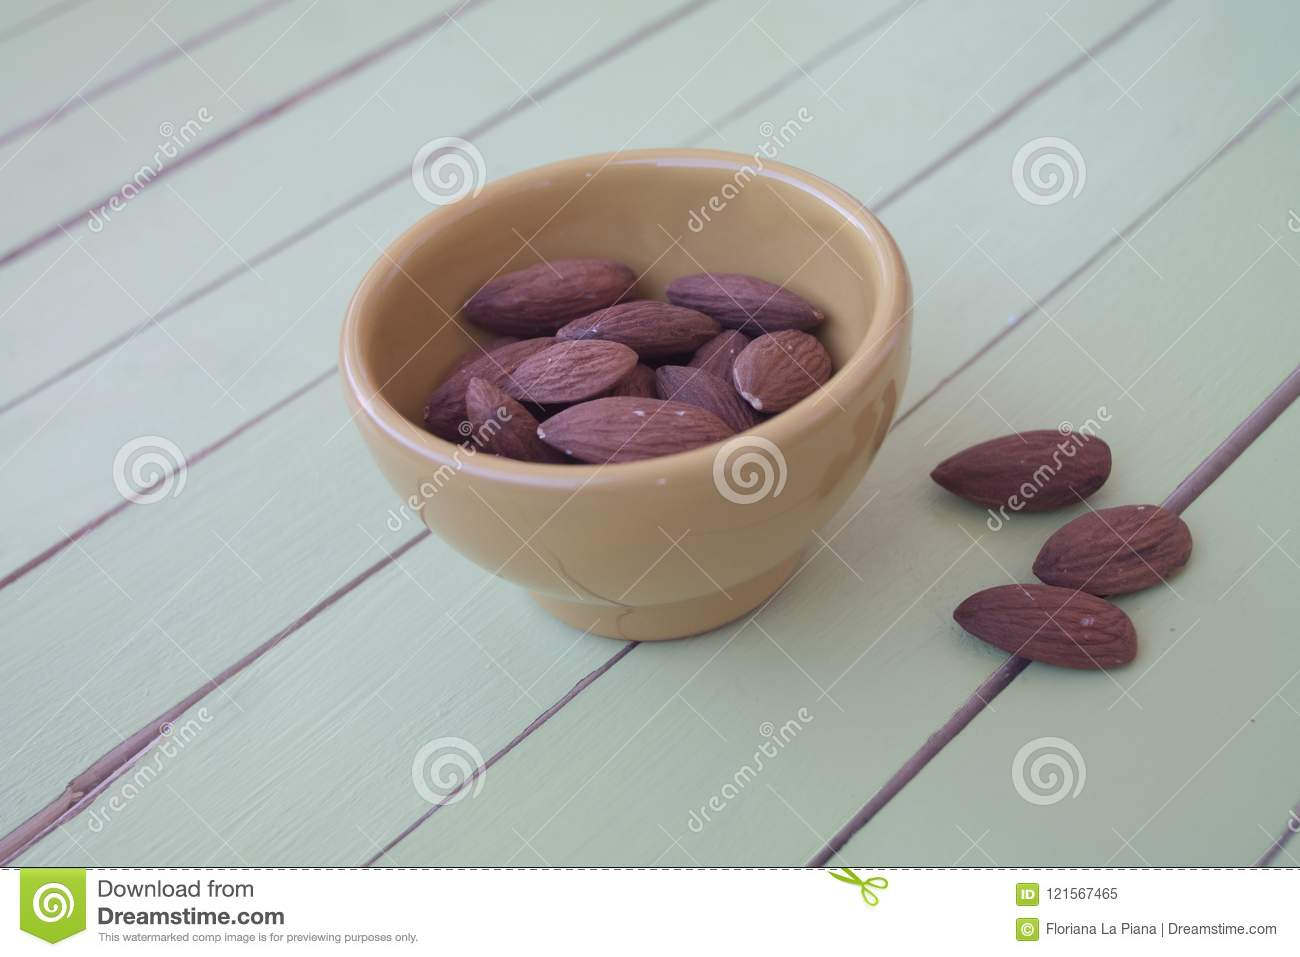 Sweet almonds in a yellow bowl on green wood